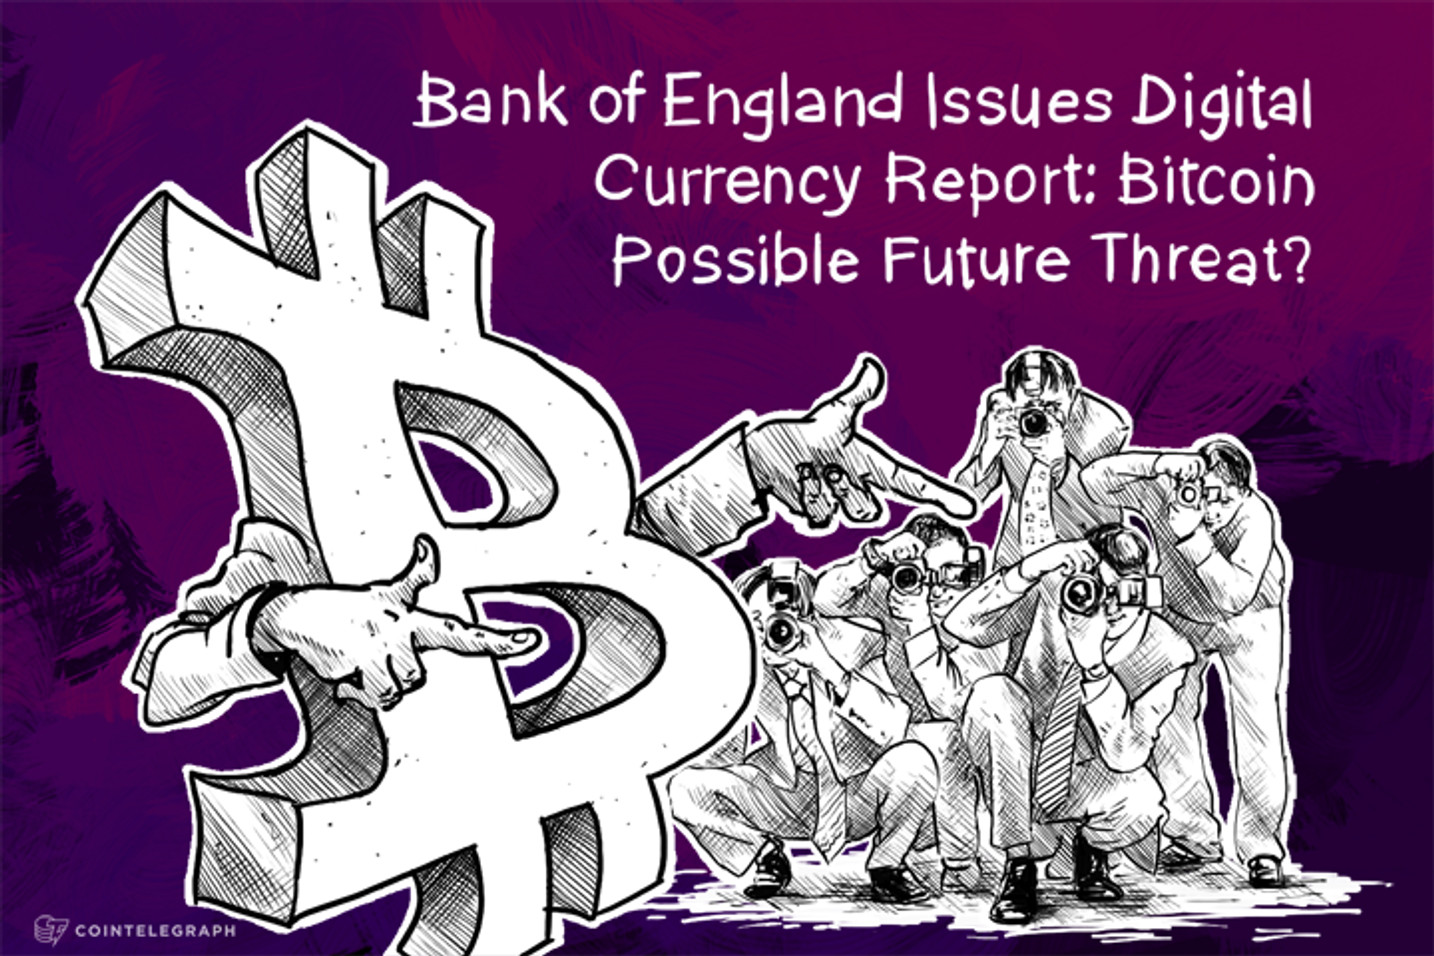 Bank of England Issues Digital Currency Report: Bitcoin Possible Future Threat?